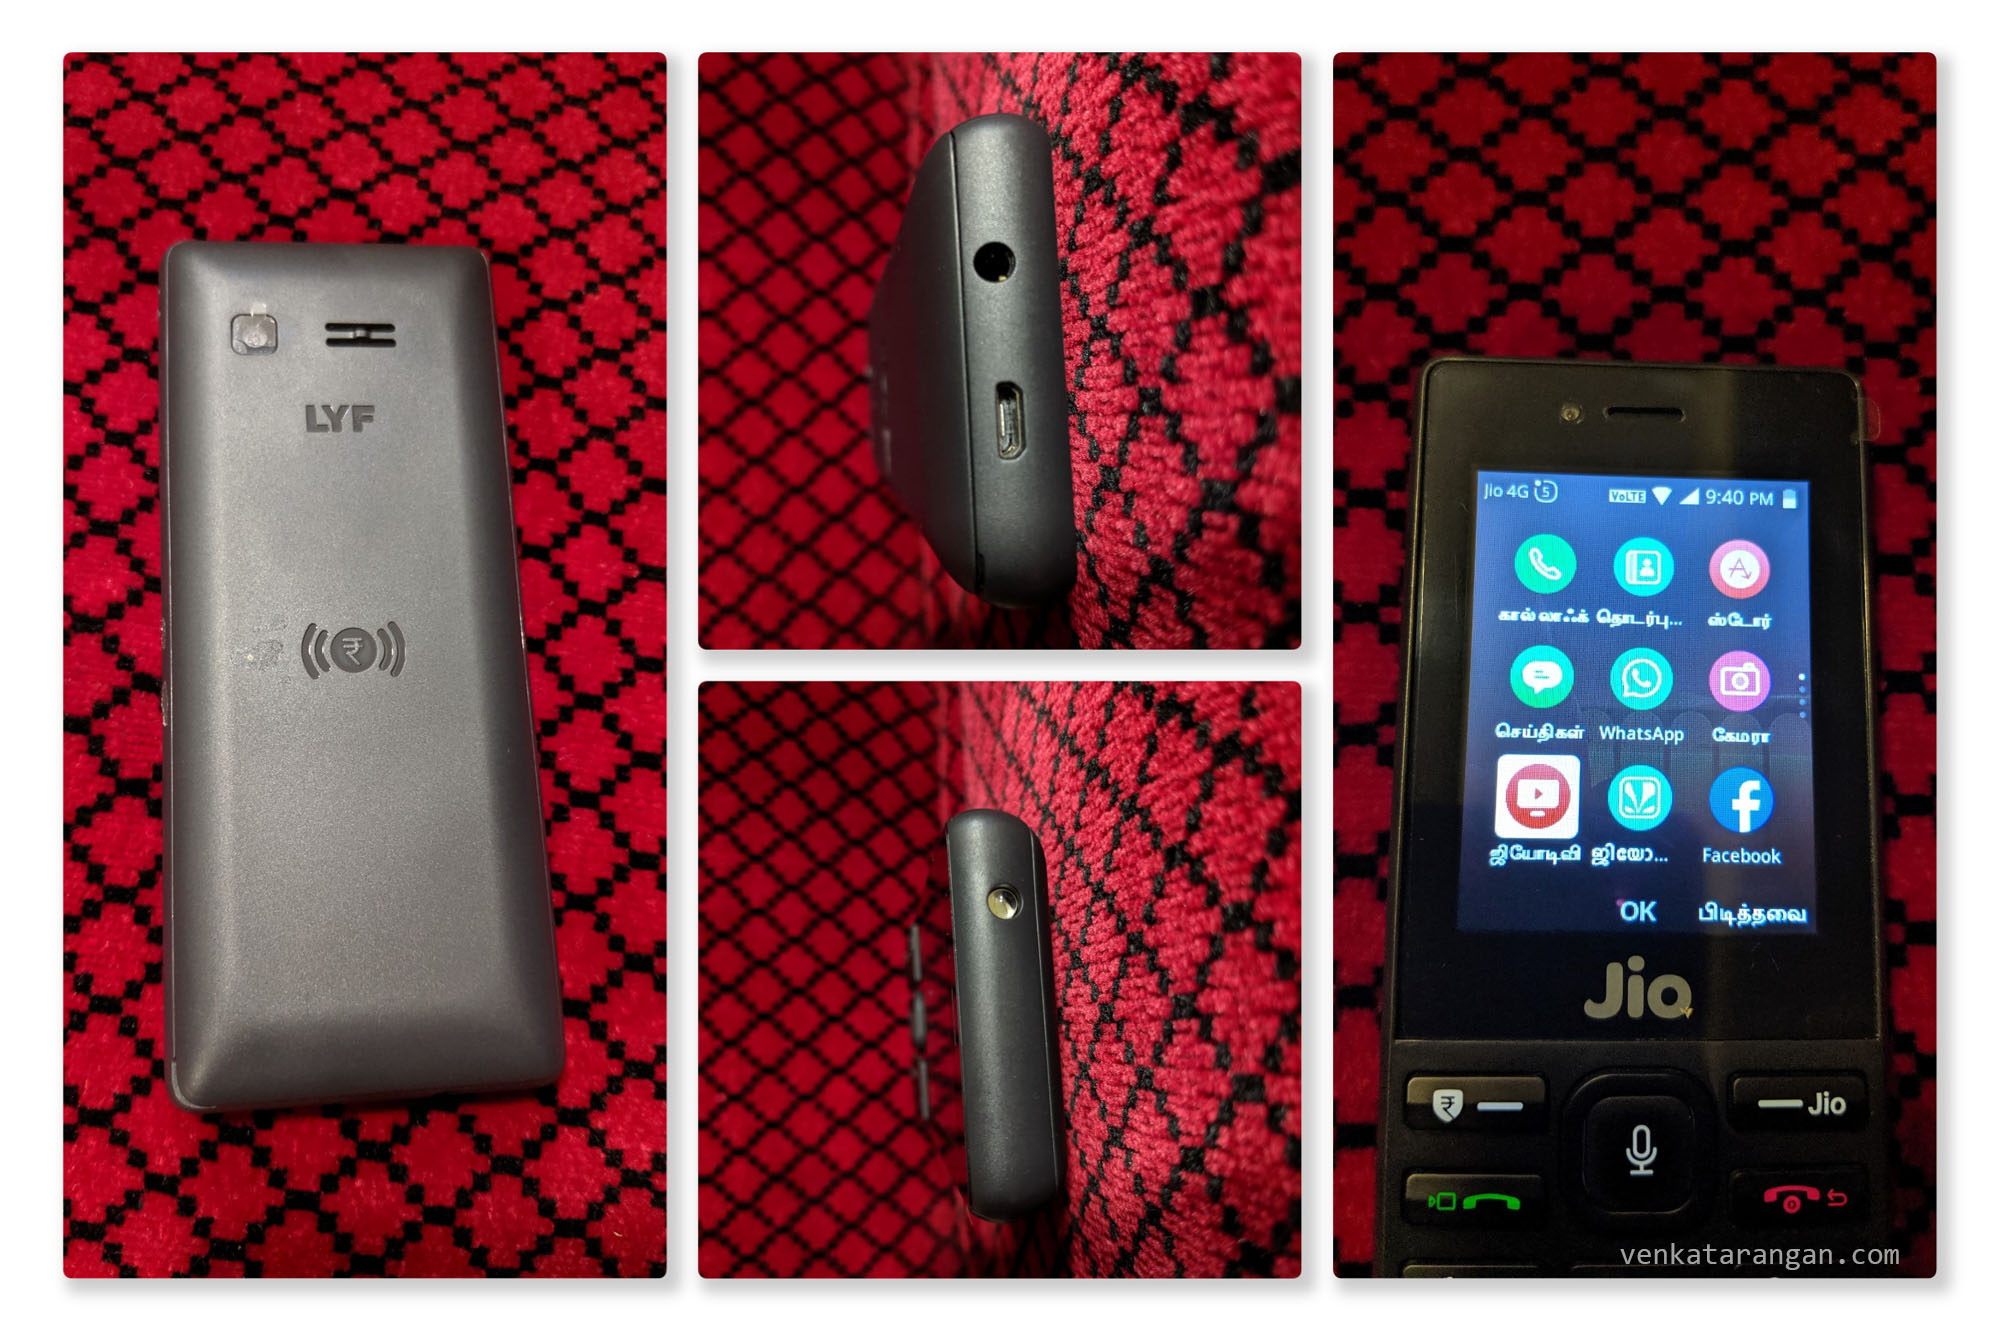 Jio Phone has a 2MP Camera in the back, 3.5 mm headphone port, a Micro-USB port for charging, a torch light on the top and sports a local language interface apart from Google Voice Assistant